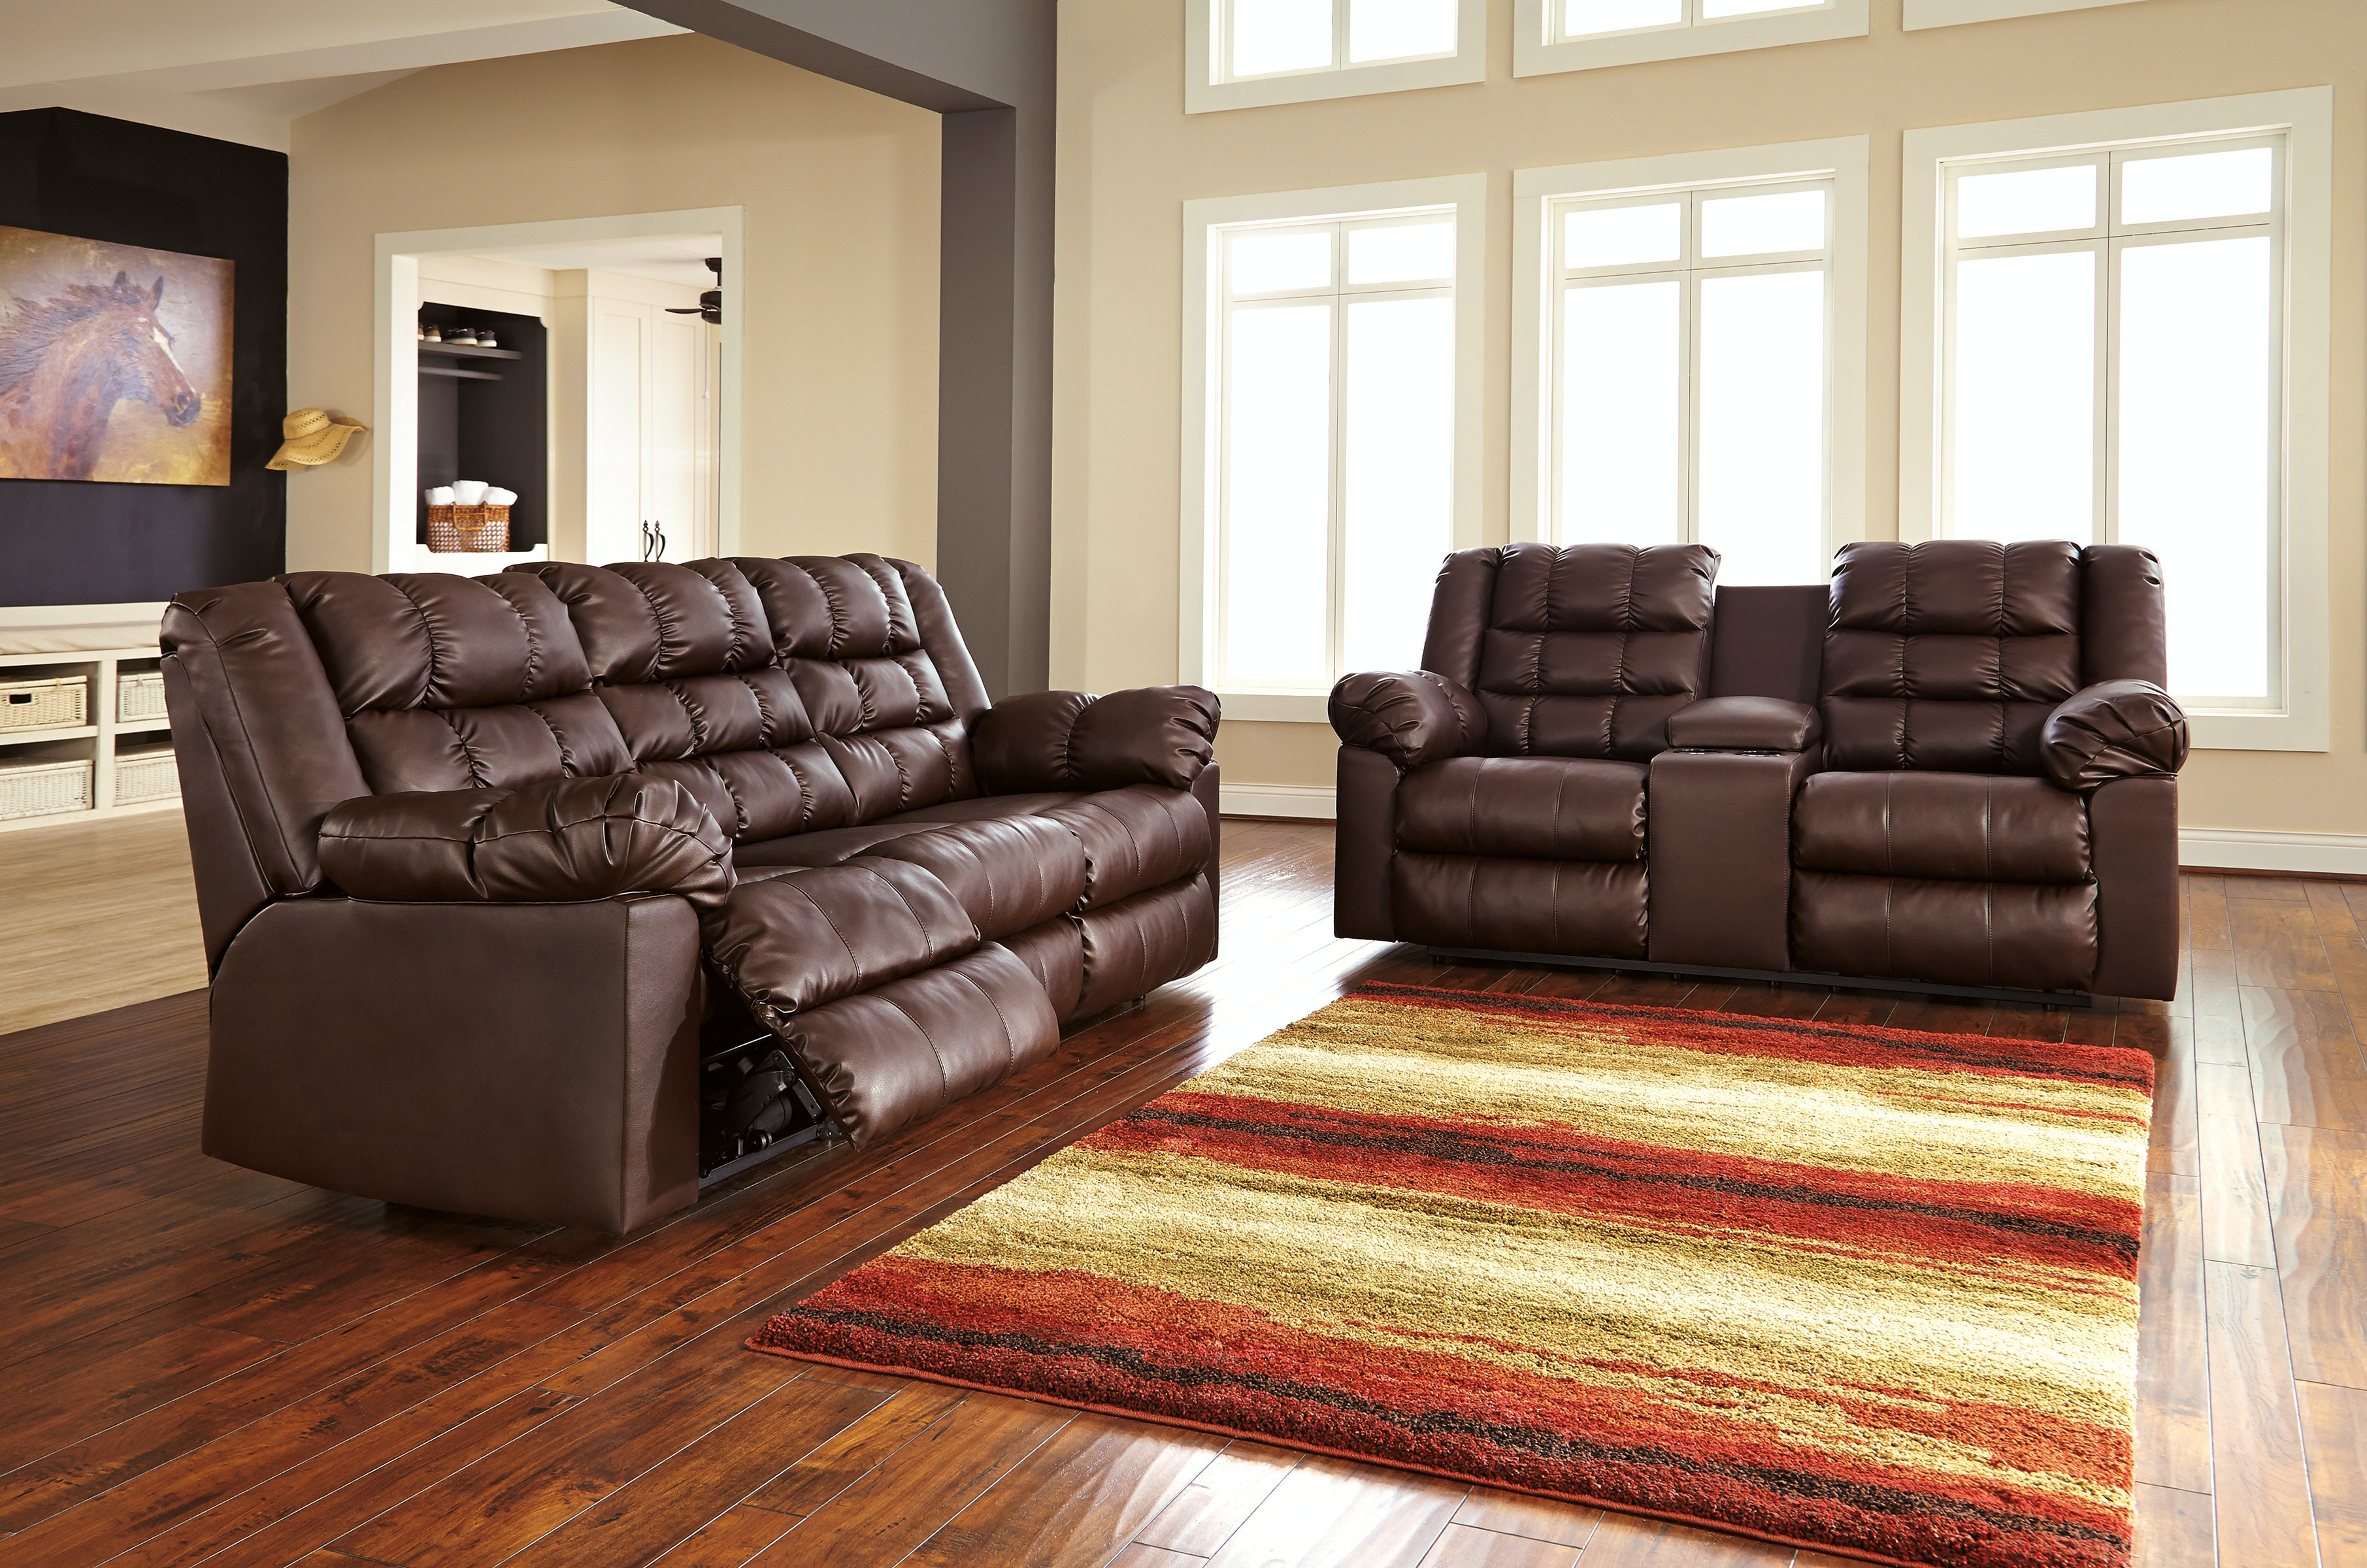 Living Room Sets Louisville Ky living room living room sets - winner furniture - louisville